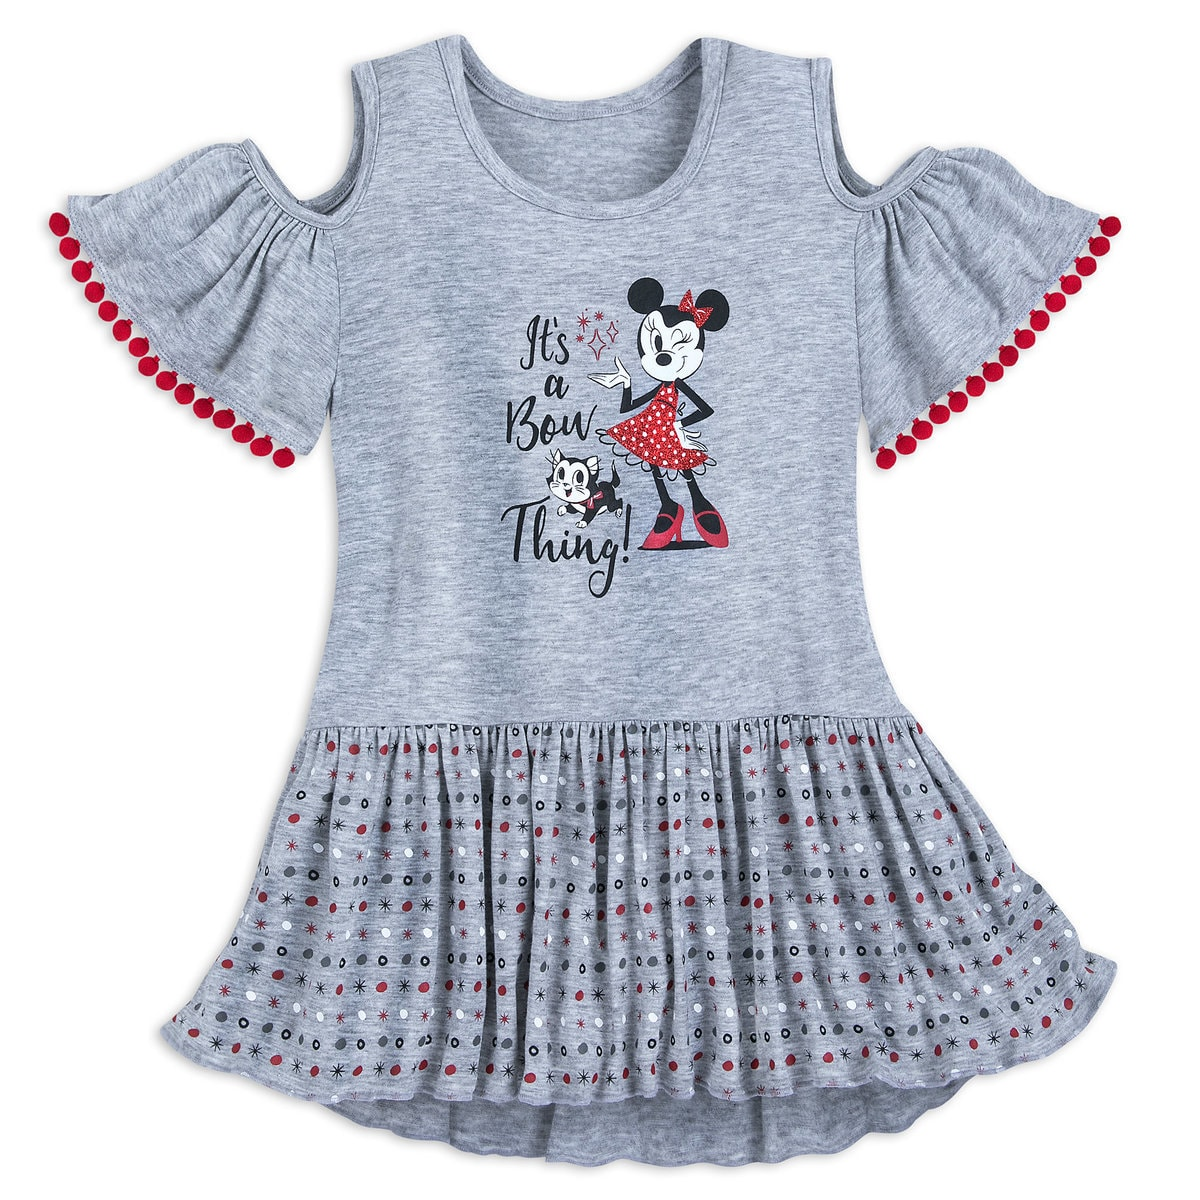 65ceeea8992e Product Image of Minnie Mouse and Figaro Cold Shoulder Dress for Girls # 1